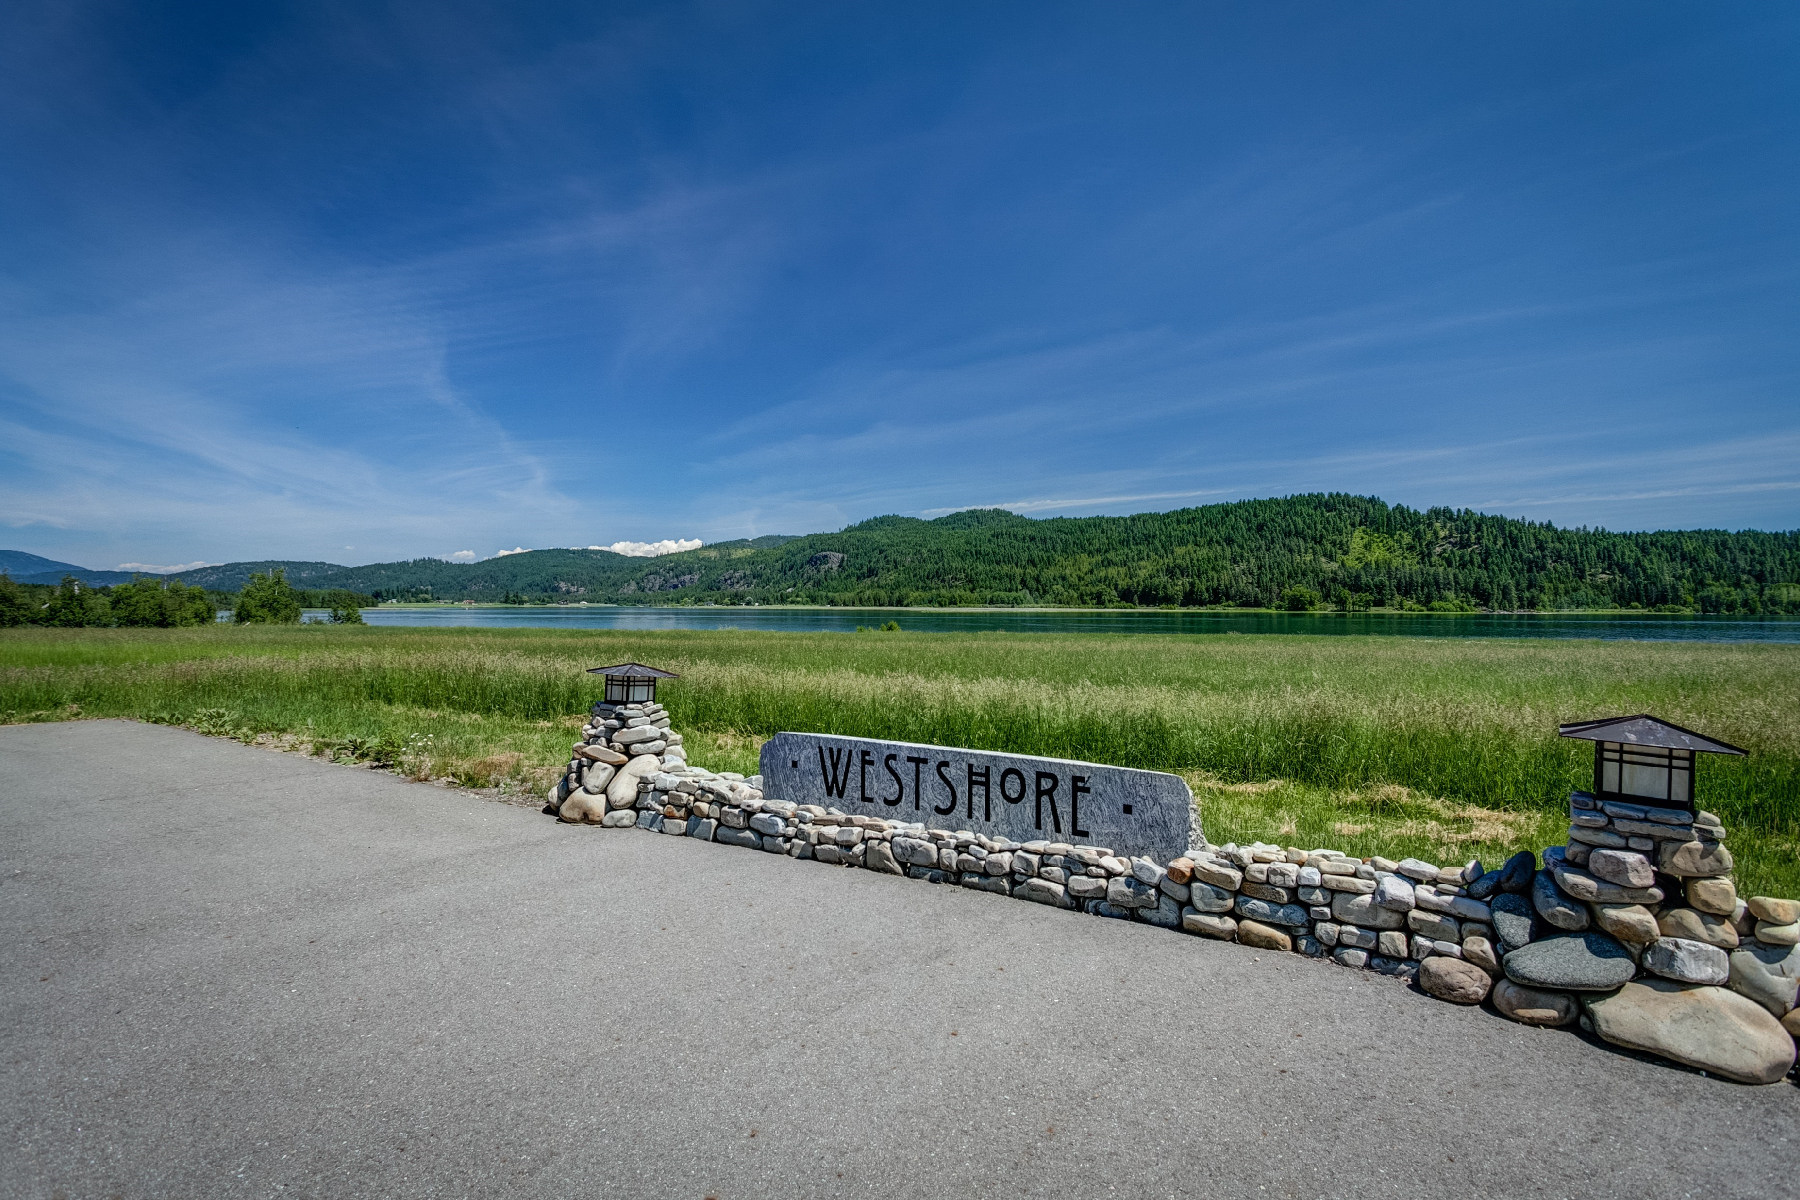 Land for Sale at Westshore Waterfront Building Sites Lot 8 Westshore Way Laclede, Idaho 83841 United States